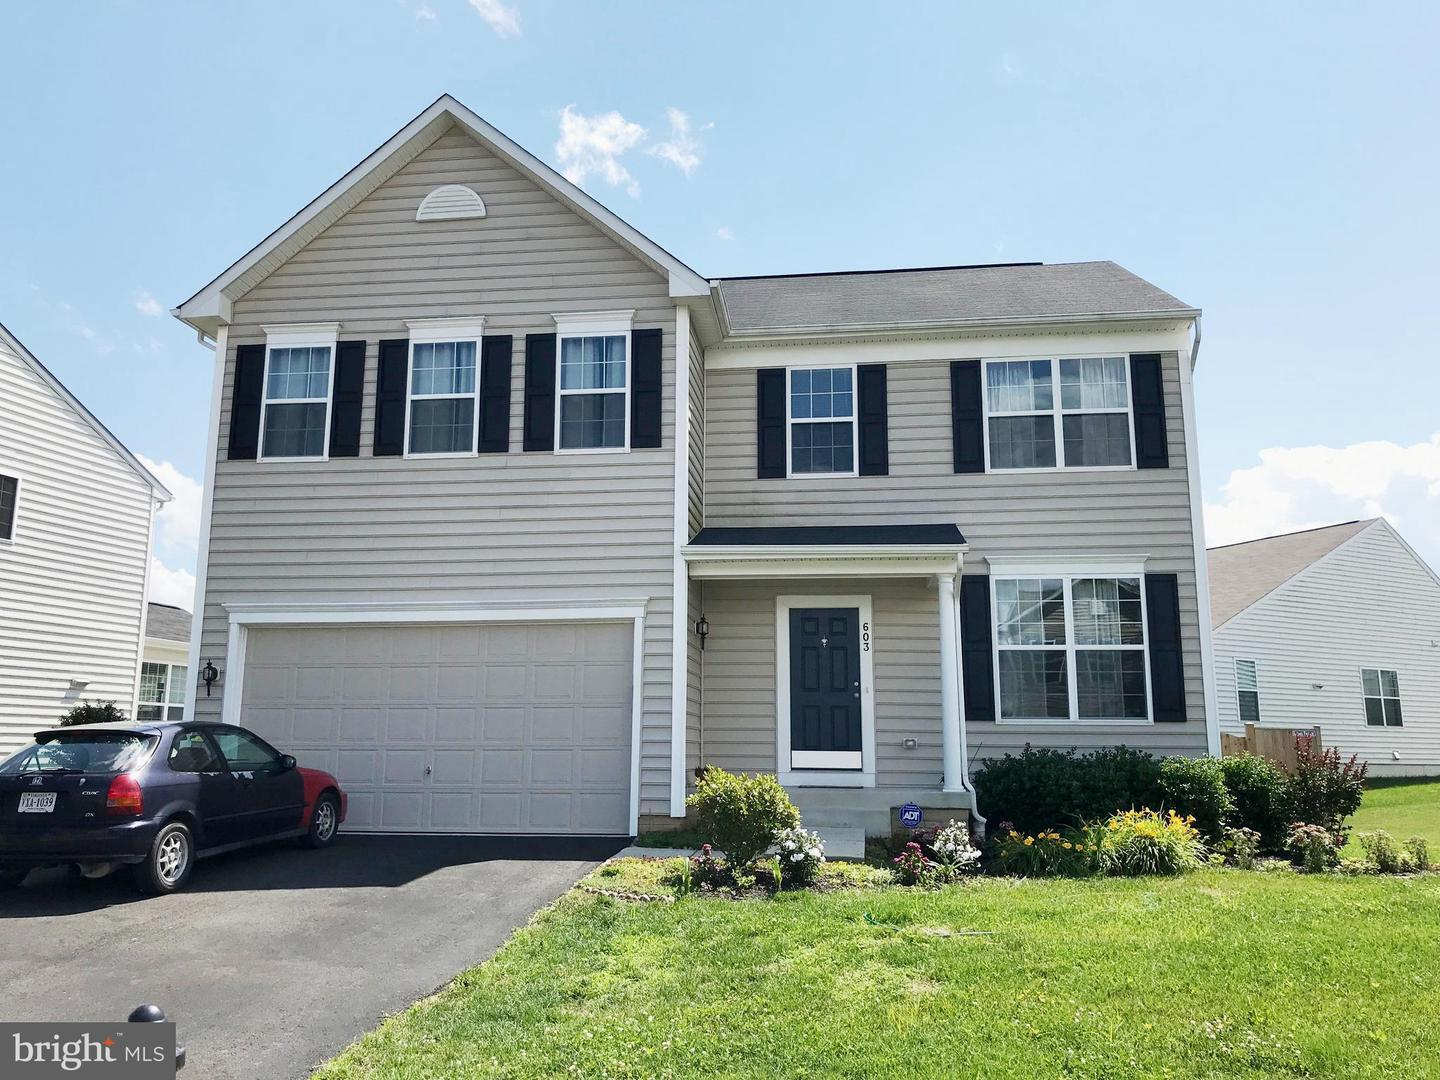 Single Family for Sale at 606 Homeplace St Culpeper, Virginia 22701 United States